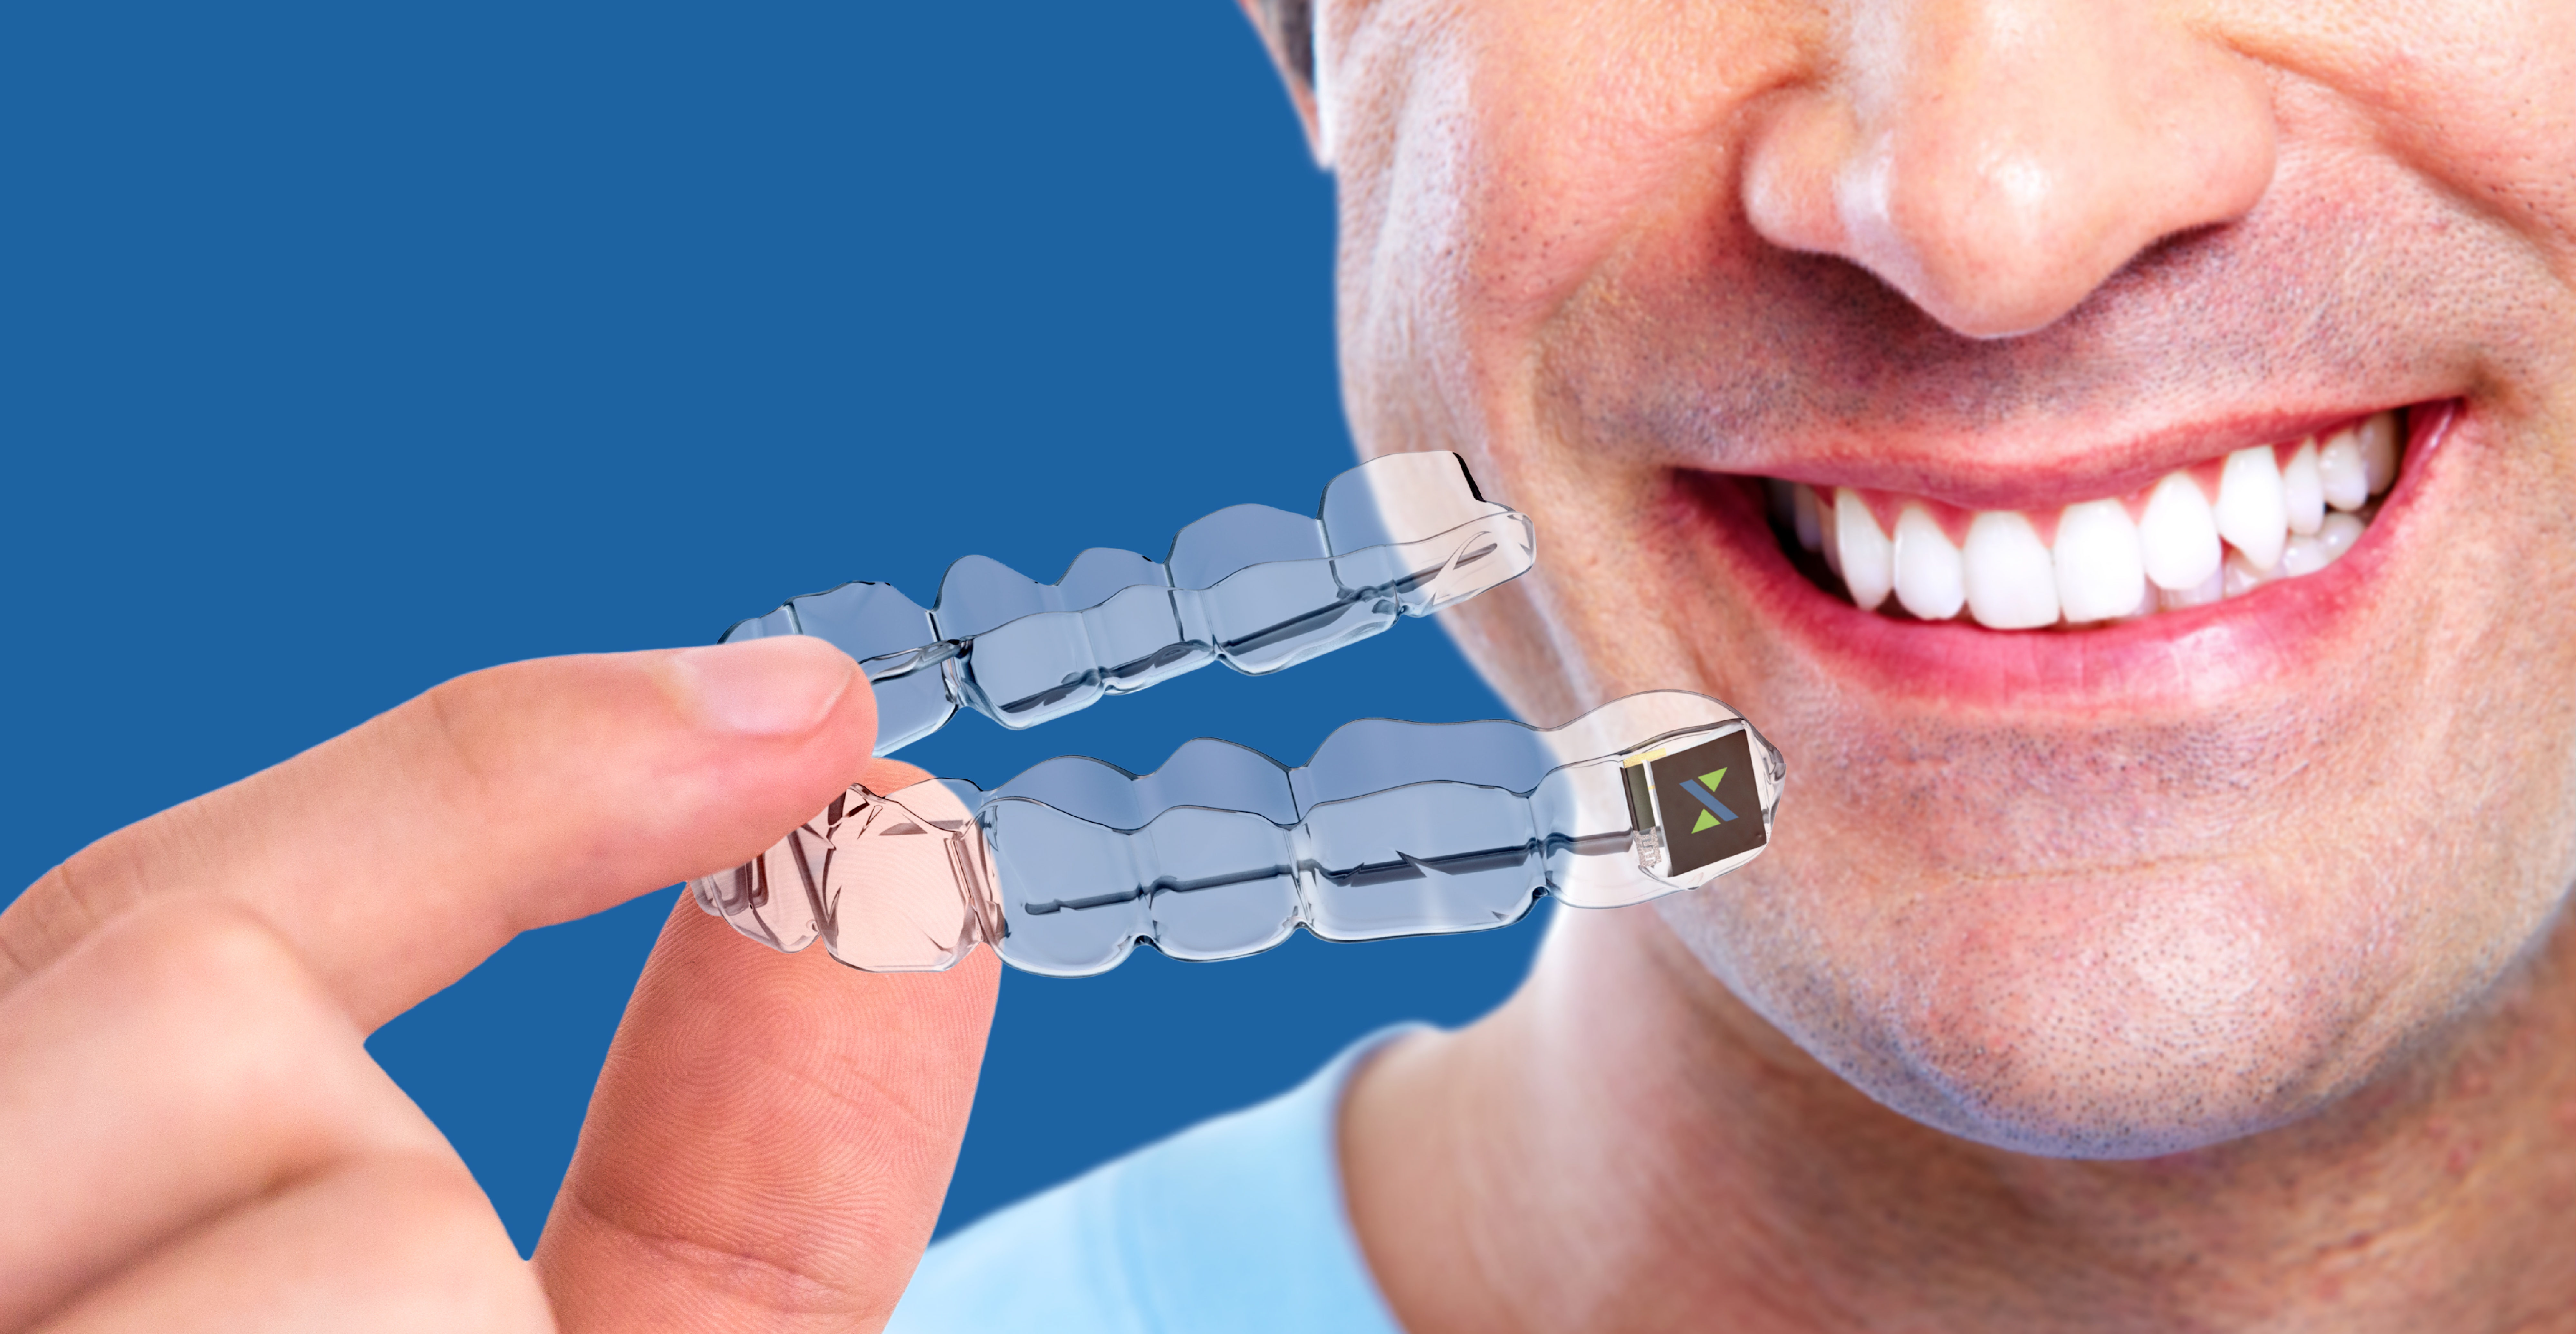 Vision of Stereax M50 powering smart dental brace